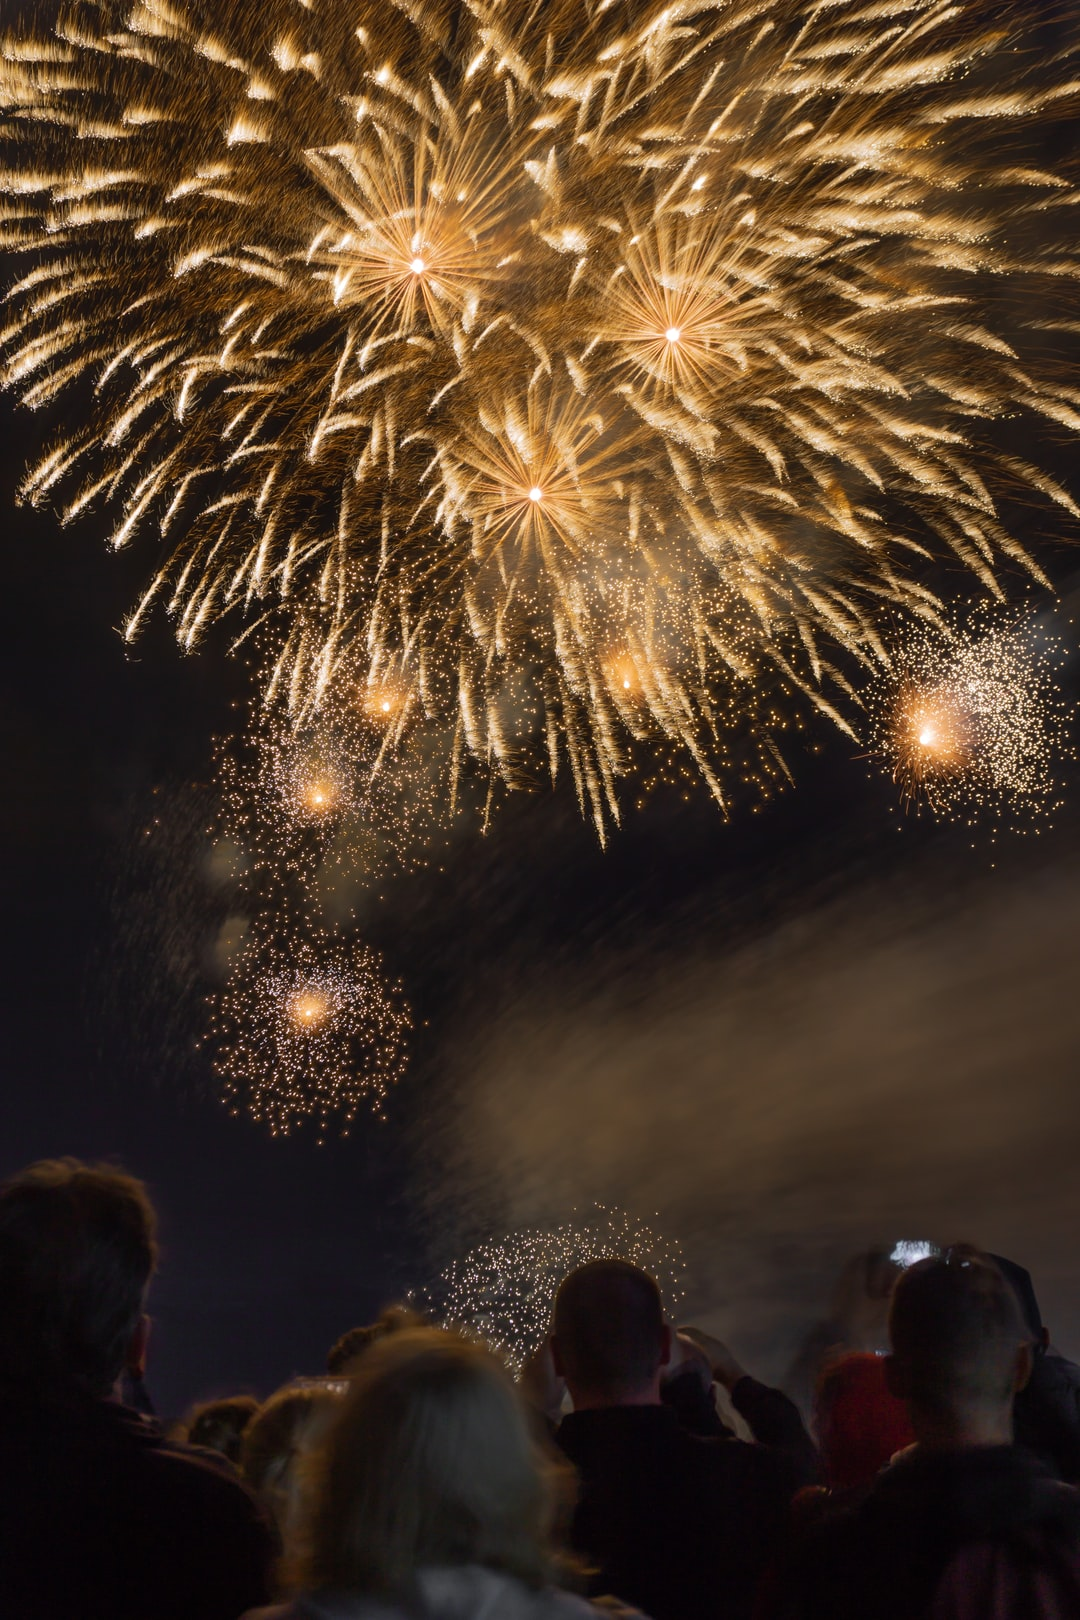 500+ New Year Images [HD]   Download Free Images on Unsplash